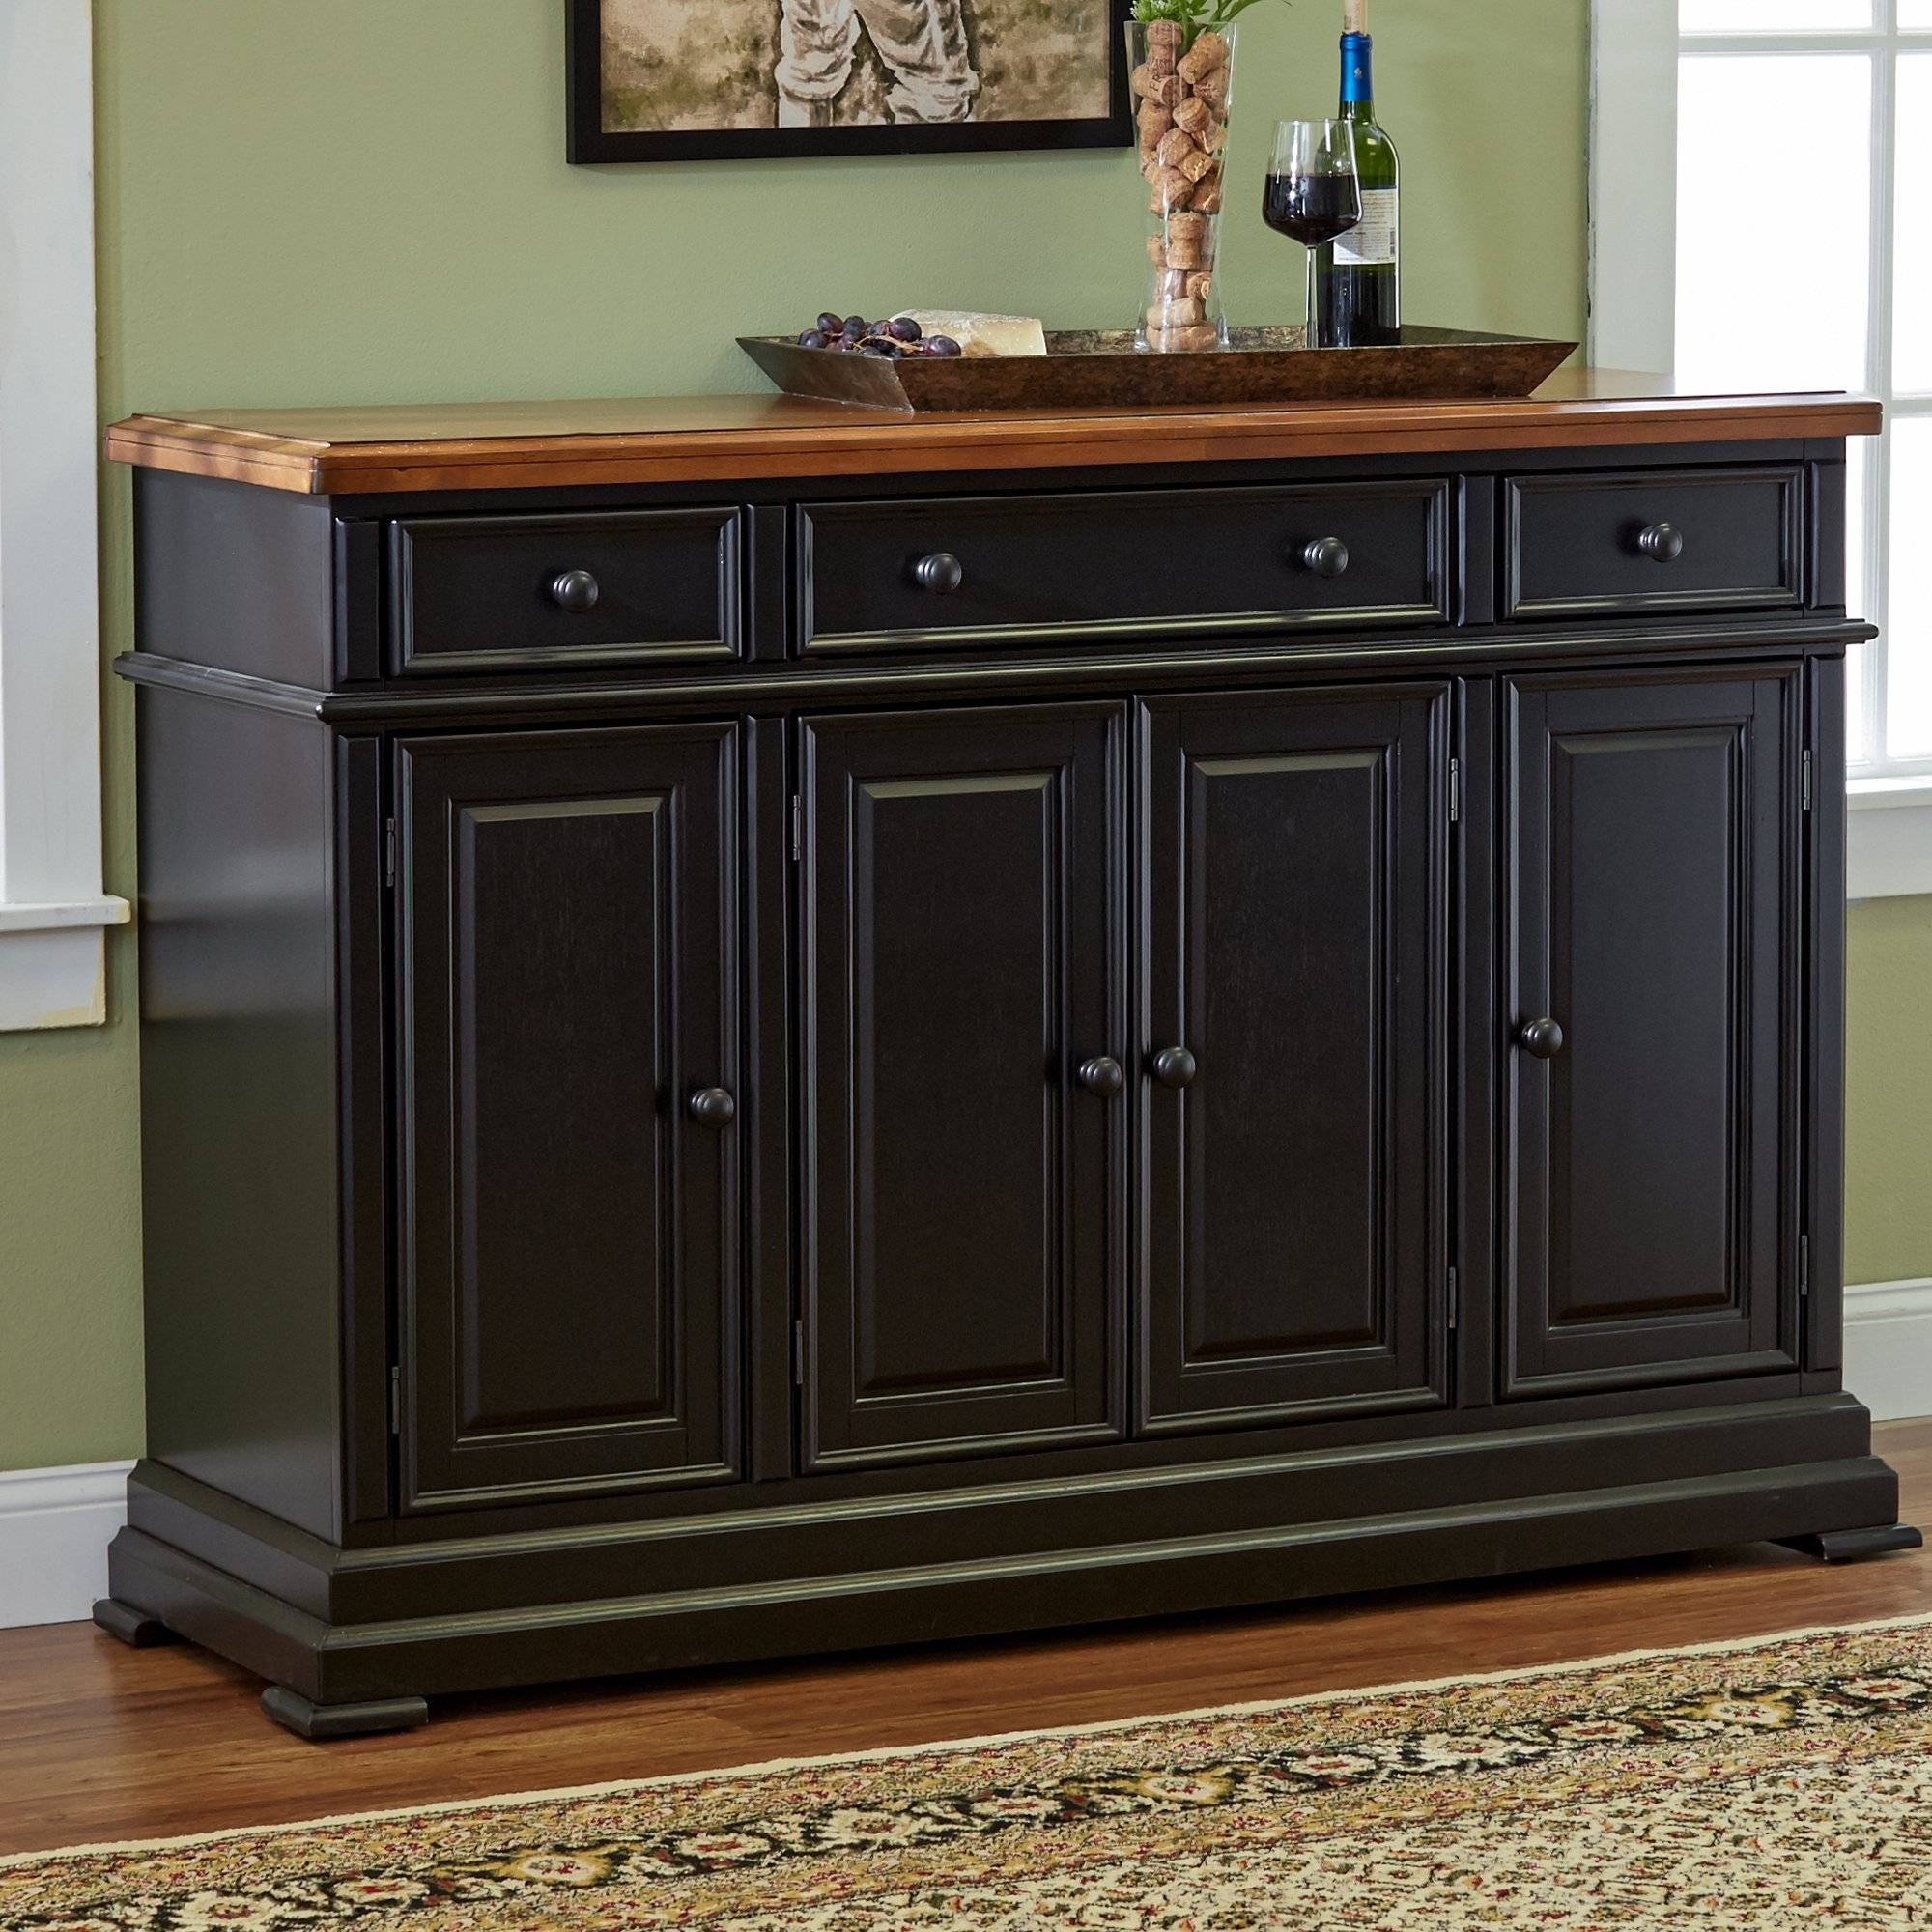 Luxury Rustic Sideboard Buffet – Bjdgjy Regarding Distressed Buffet Sideboards (View 5 of 15)